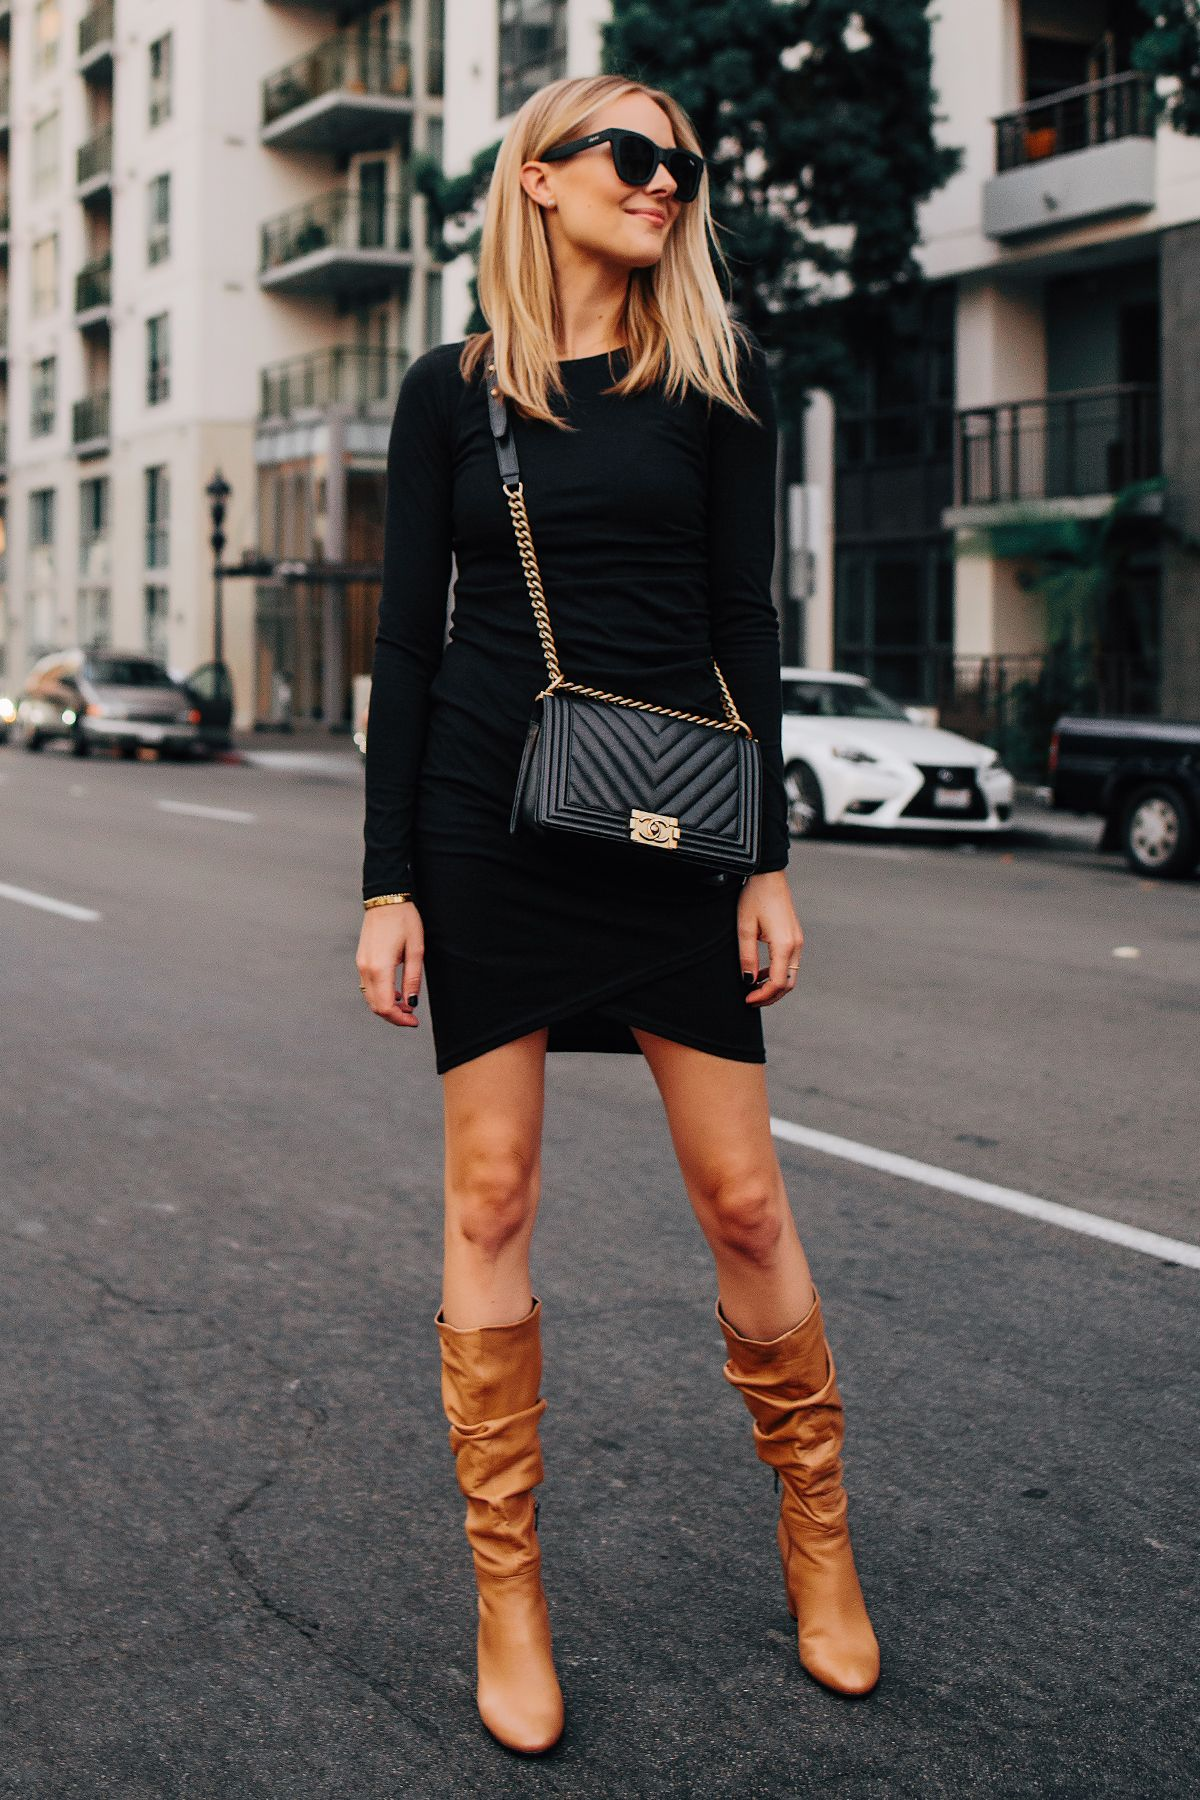 9bf7c2752510 Blonde Woman Wearing Black Long Sleeve Bodycon Dress Ecco Tan Leather  Heeled Boots Chanel Black Boy Bag Fashion Jackson San Diego Fashion Blogger  Street ...